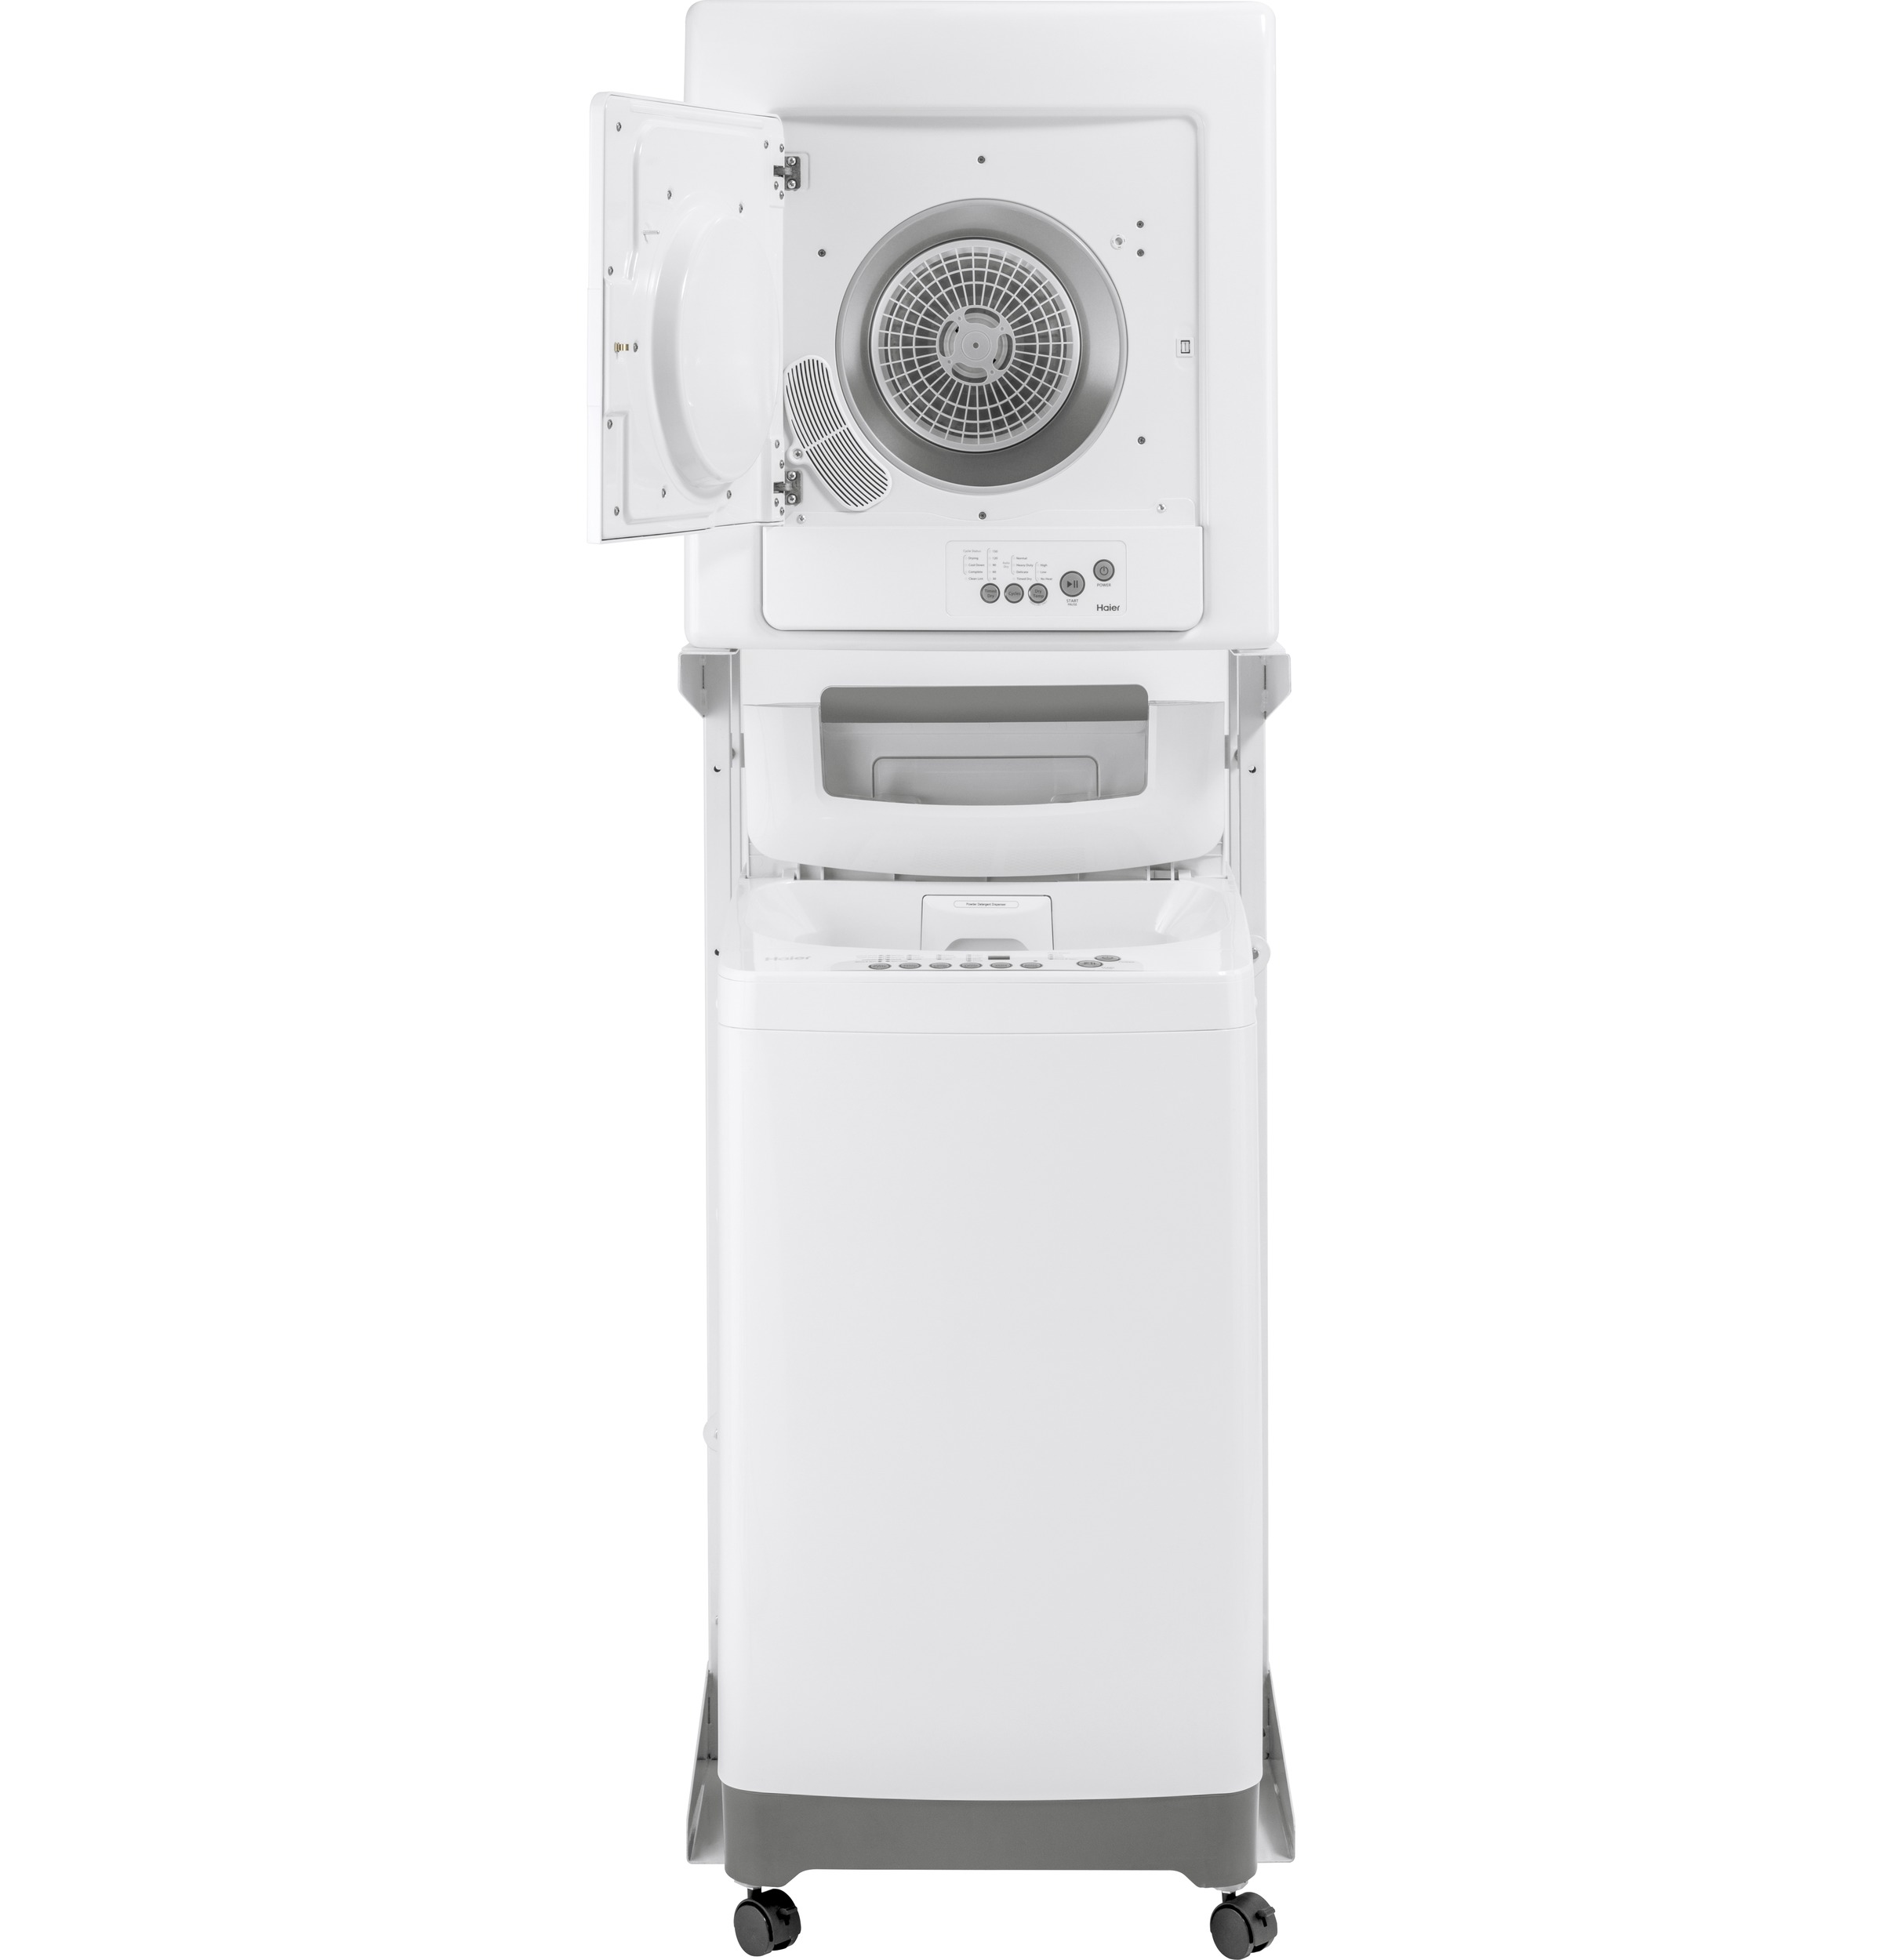 Model: HLP141E | 2.6 cu. ft. Portable Electric Vented Dryer